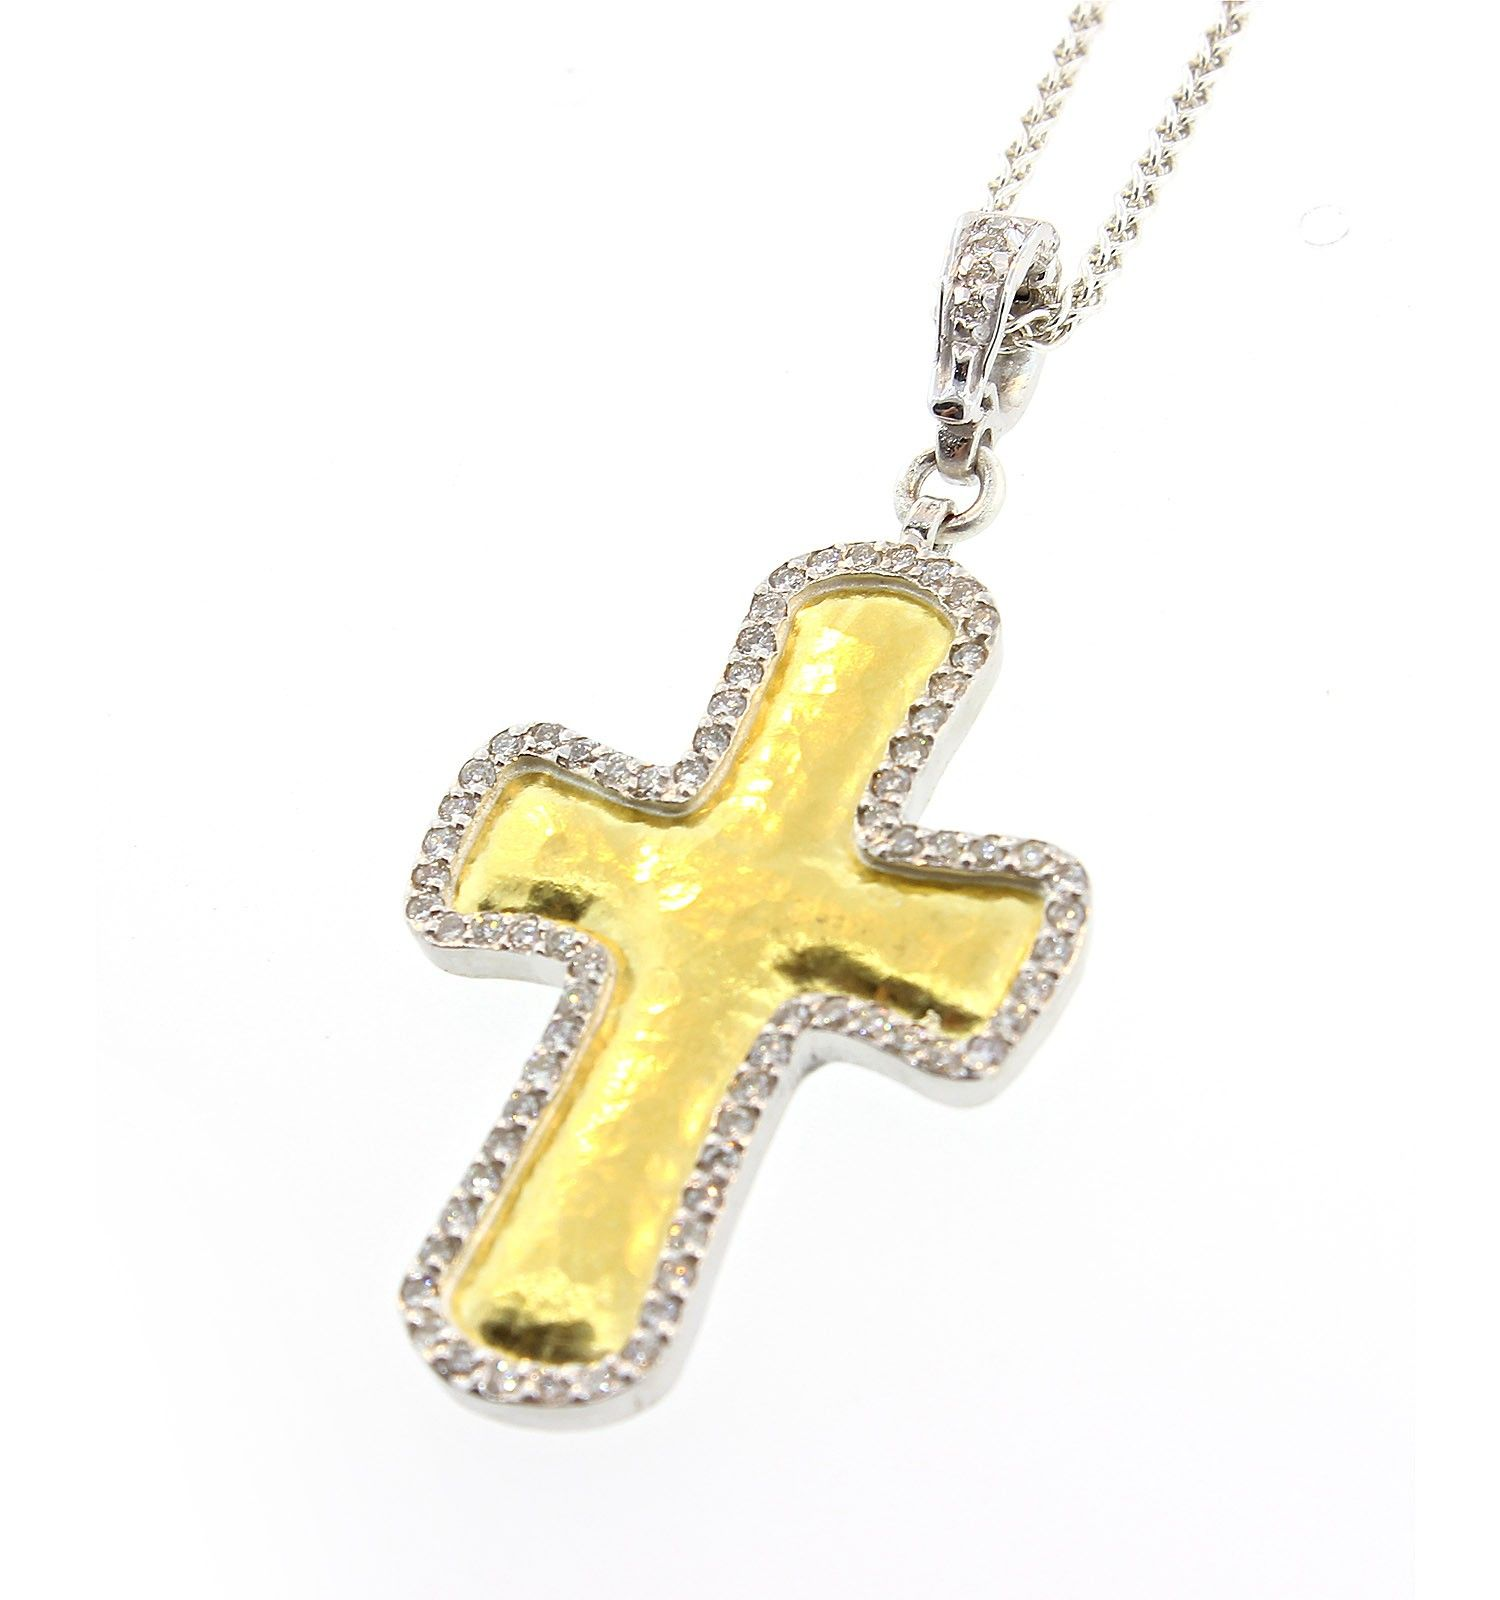 GURHAN Gold Cross Necklace Sterling Silver 24K Gold and White